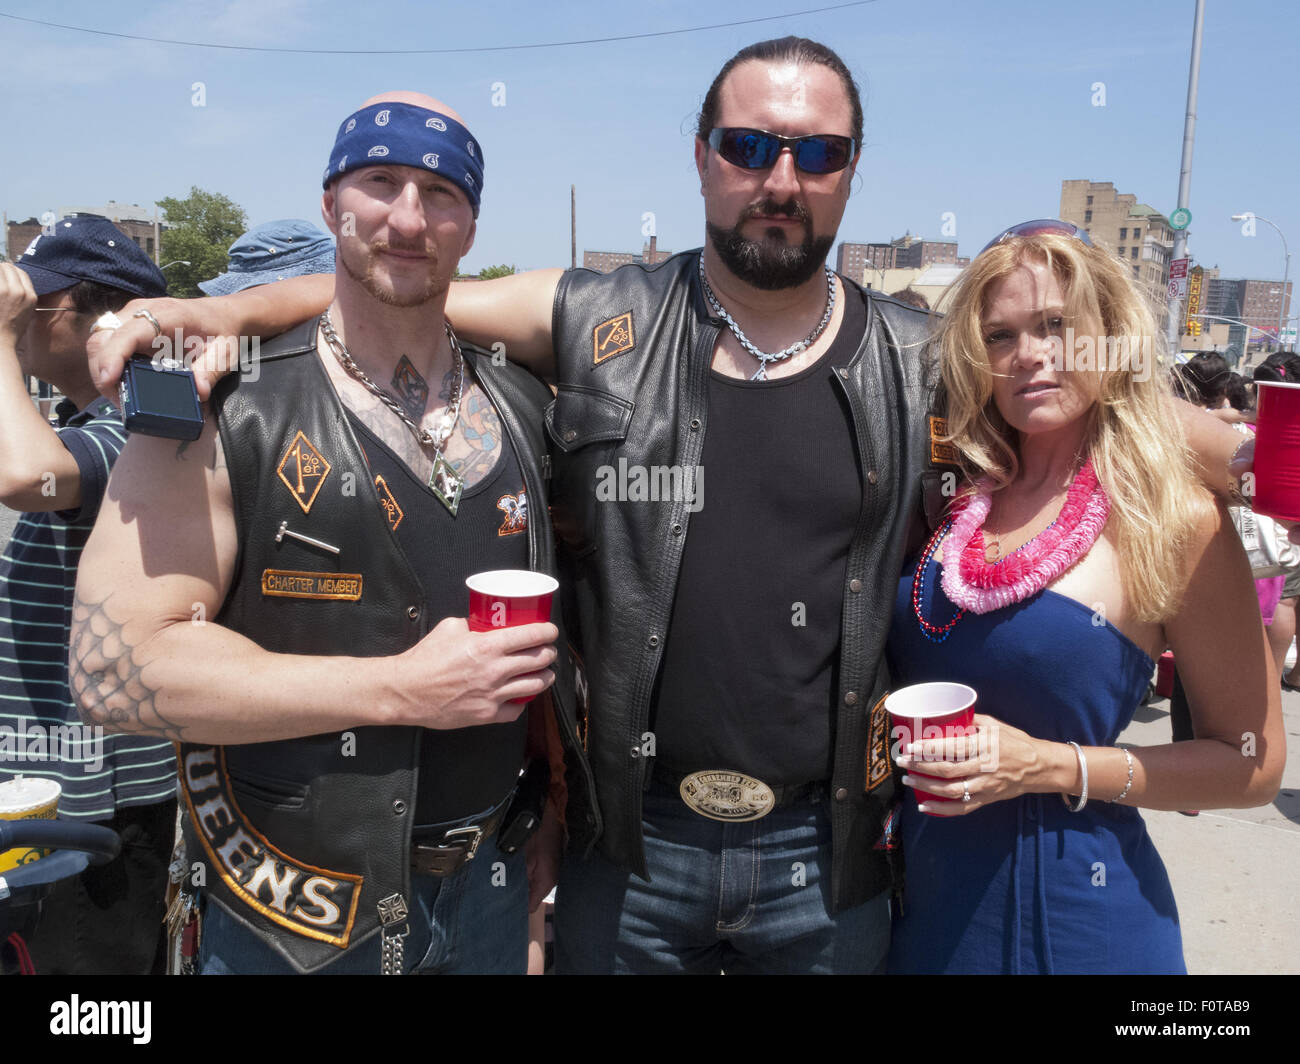 Bikers among crowd at Mermaid Parade in Coney Island in Brooklyn, New York. - Stock Image